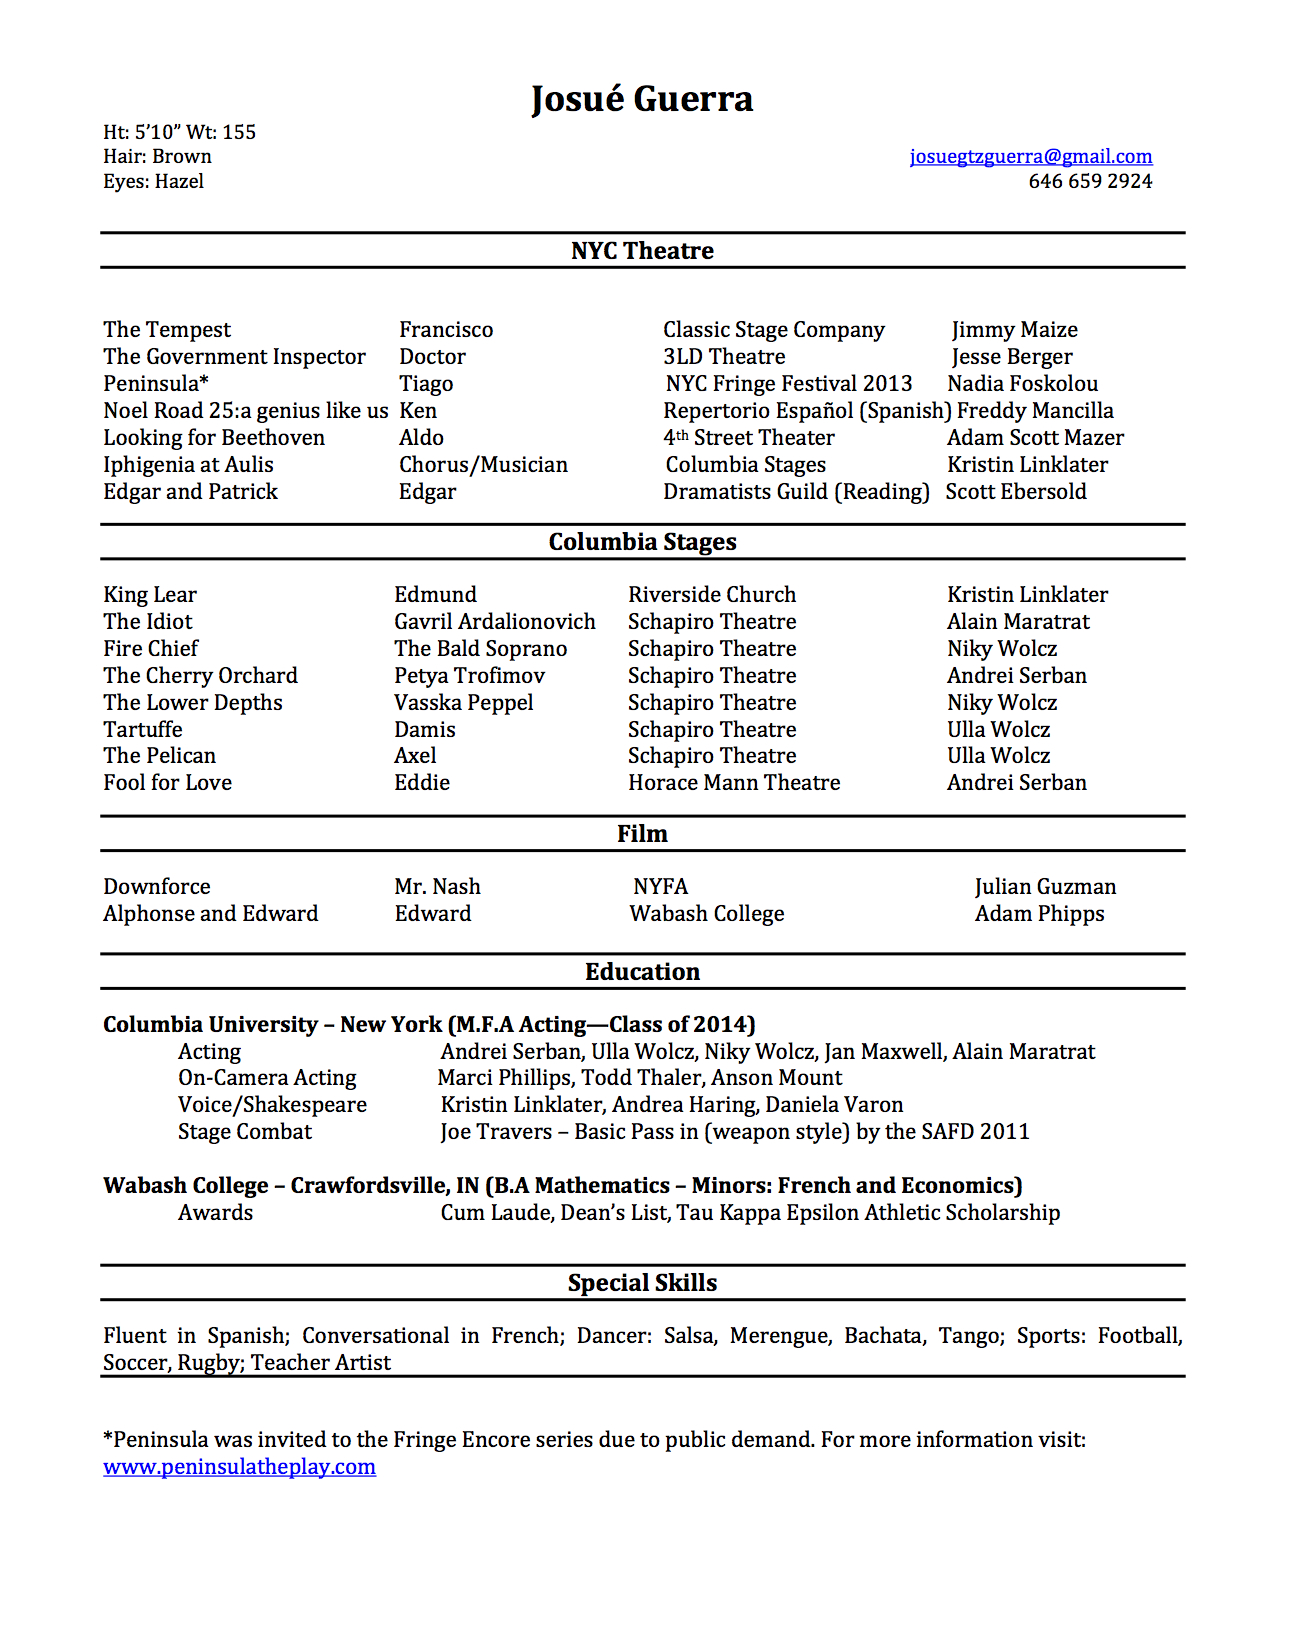 Click this image for the .pdf resume.